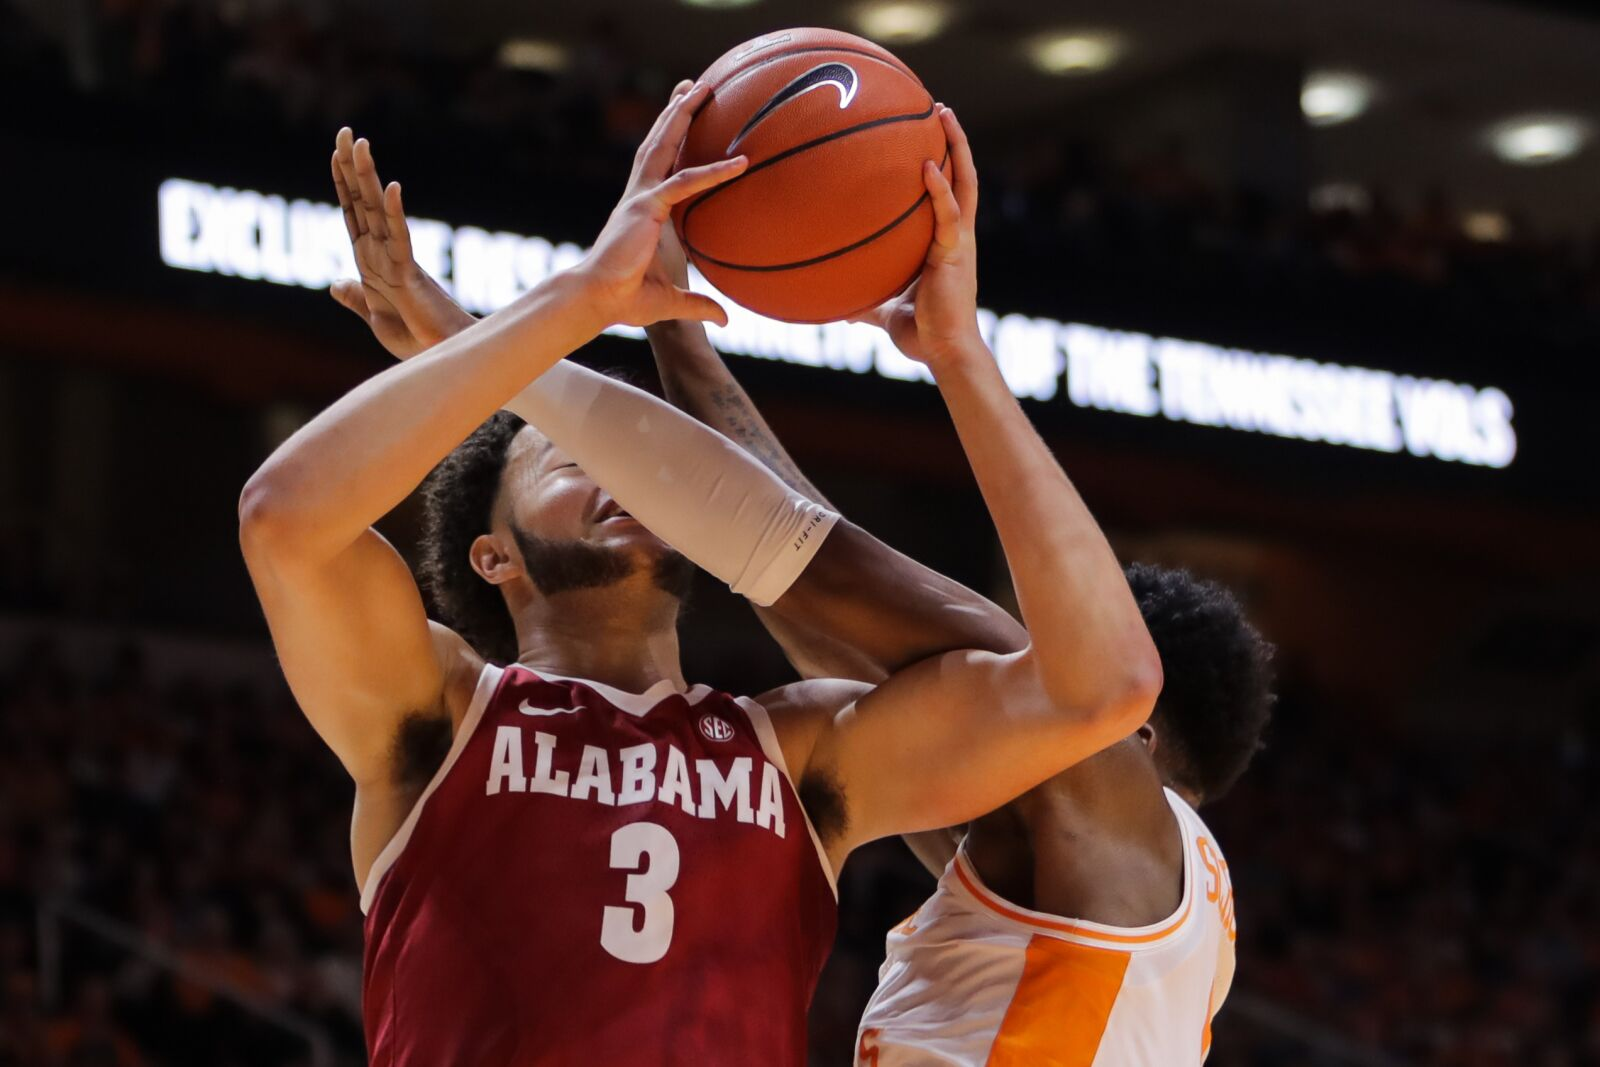 Alabama Basketball: Thank goodness for Southern Mississippi